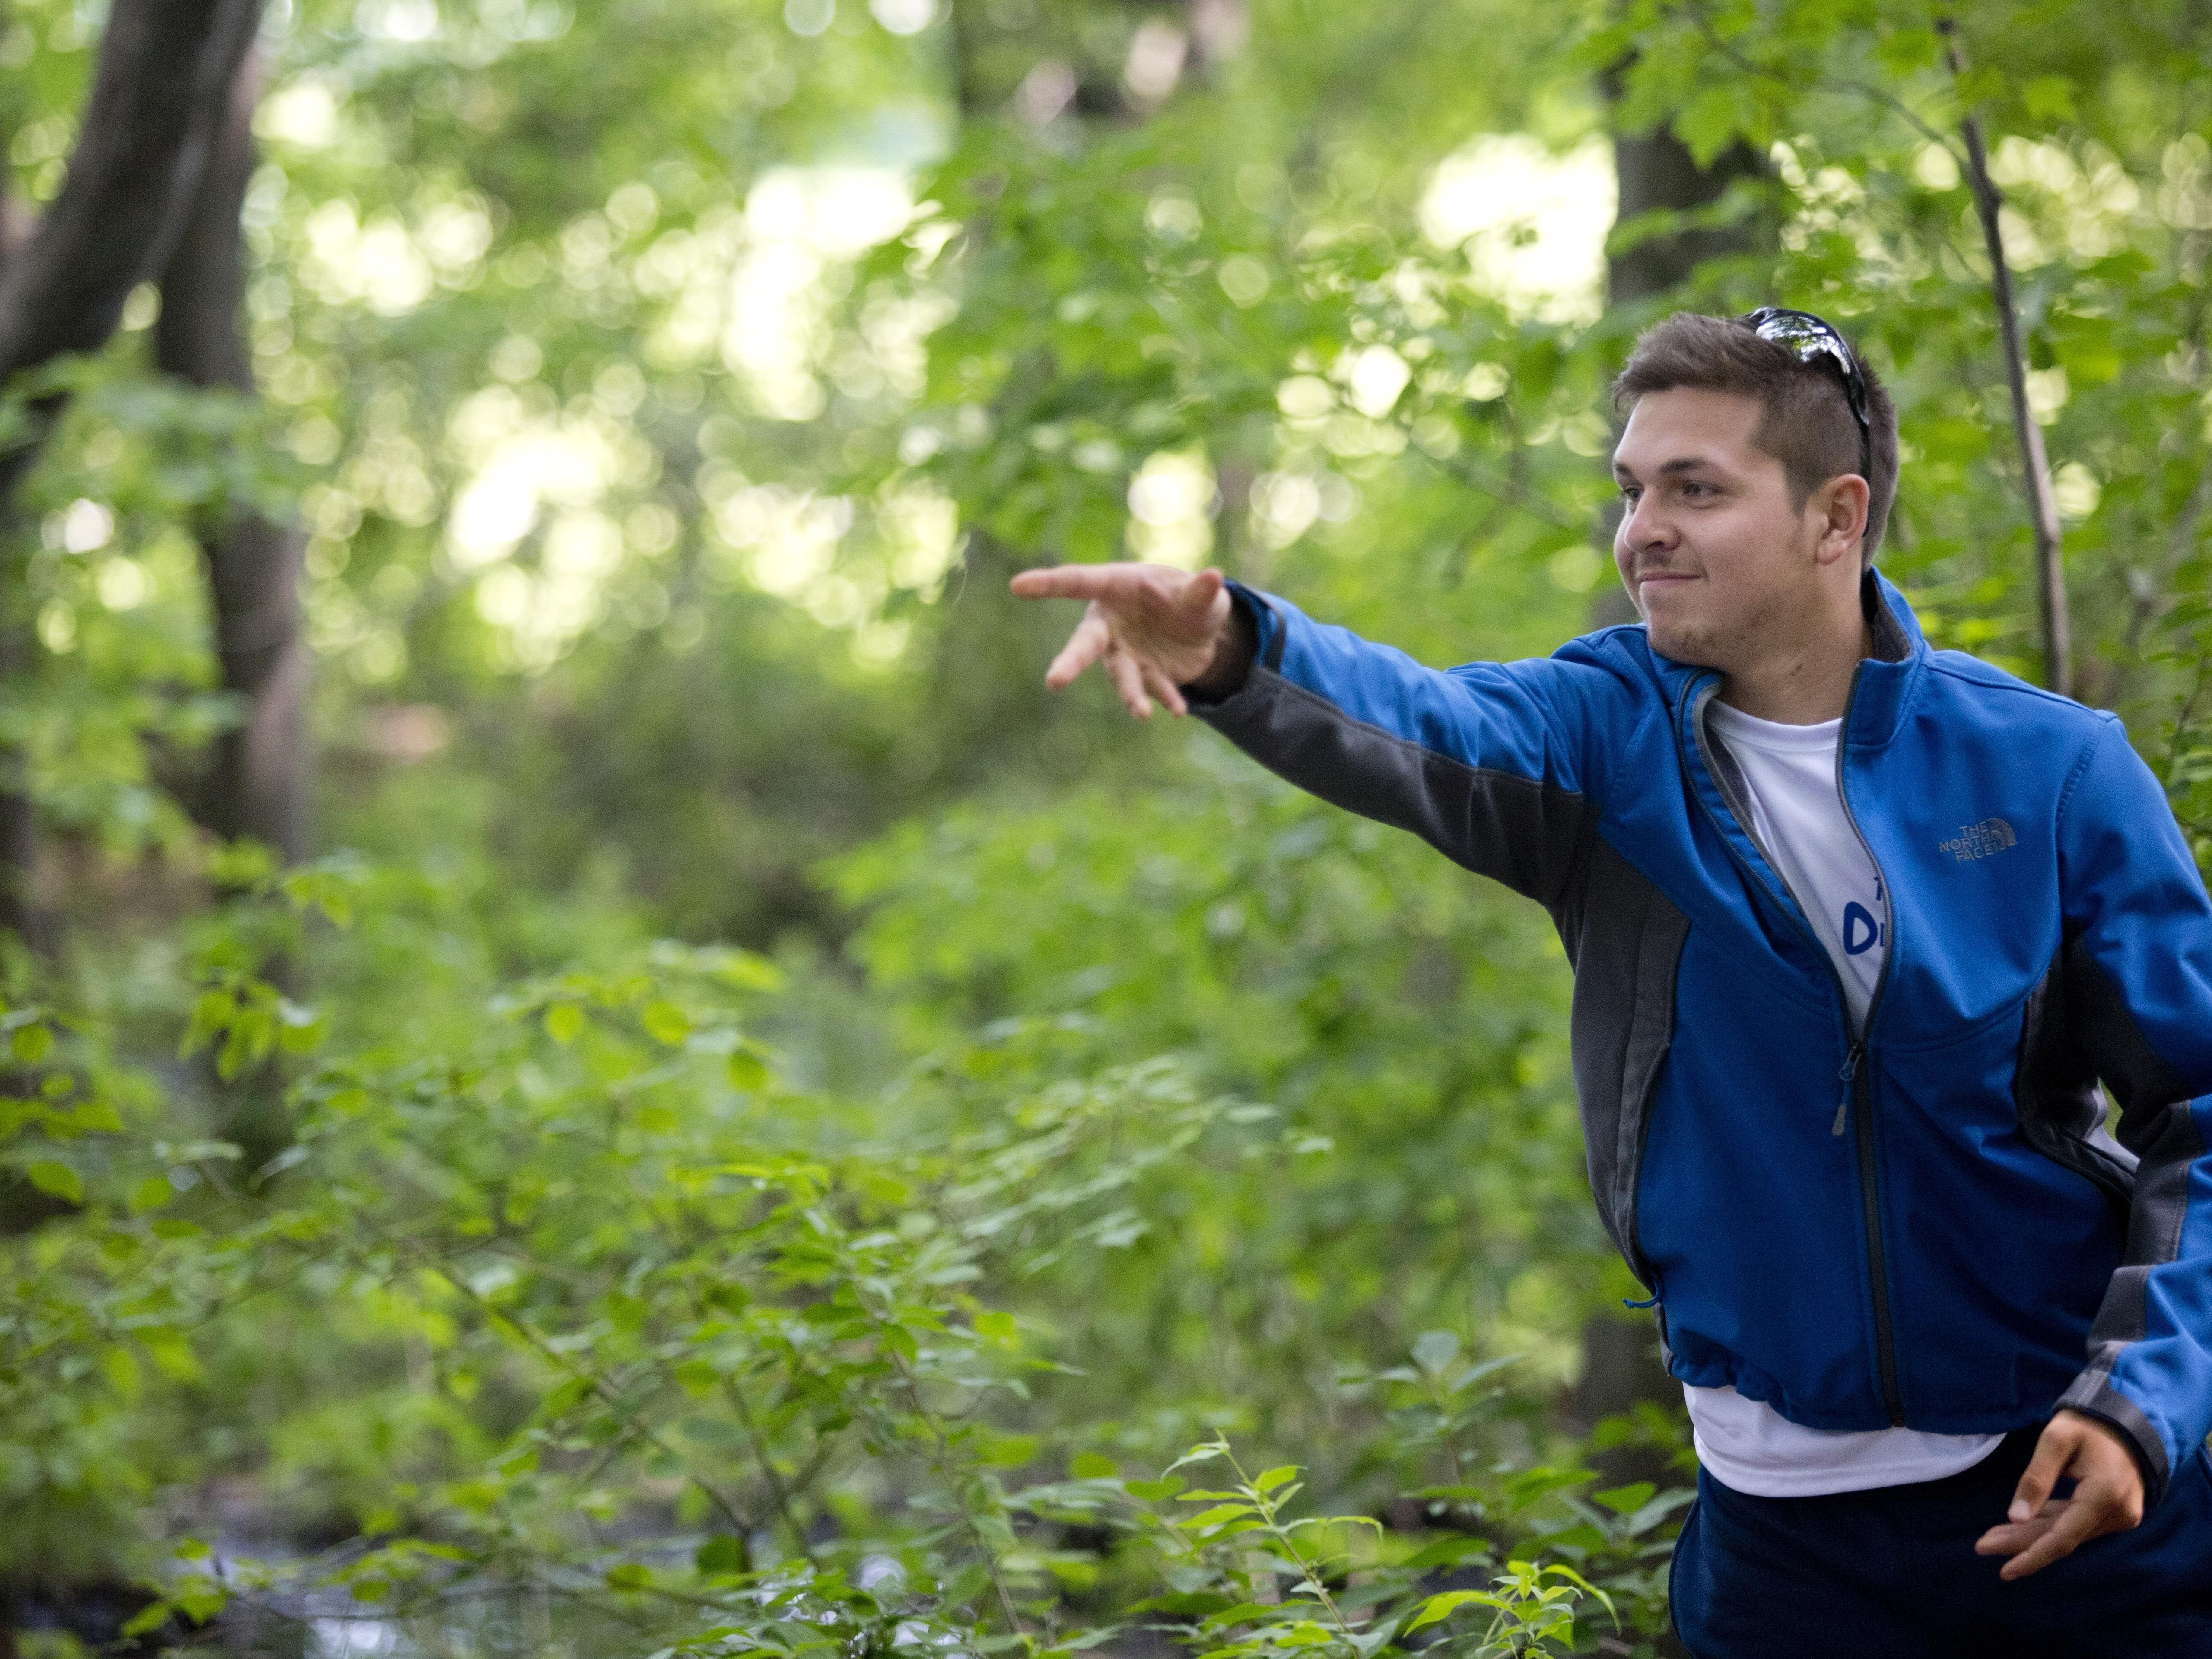 Felipe Macias, of Yale, watches his disc while playing disc golf Friday, July 3, 2015 at Holland Woods in Port Huron.